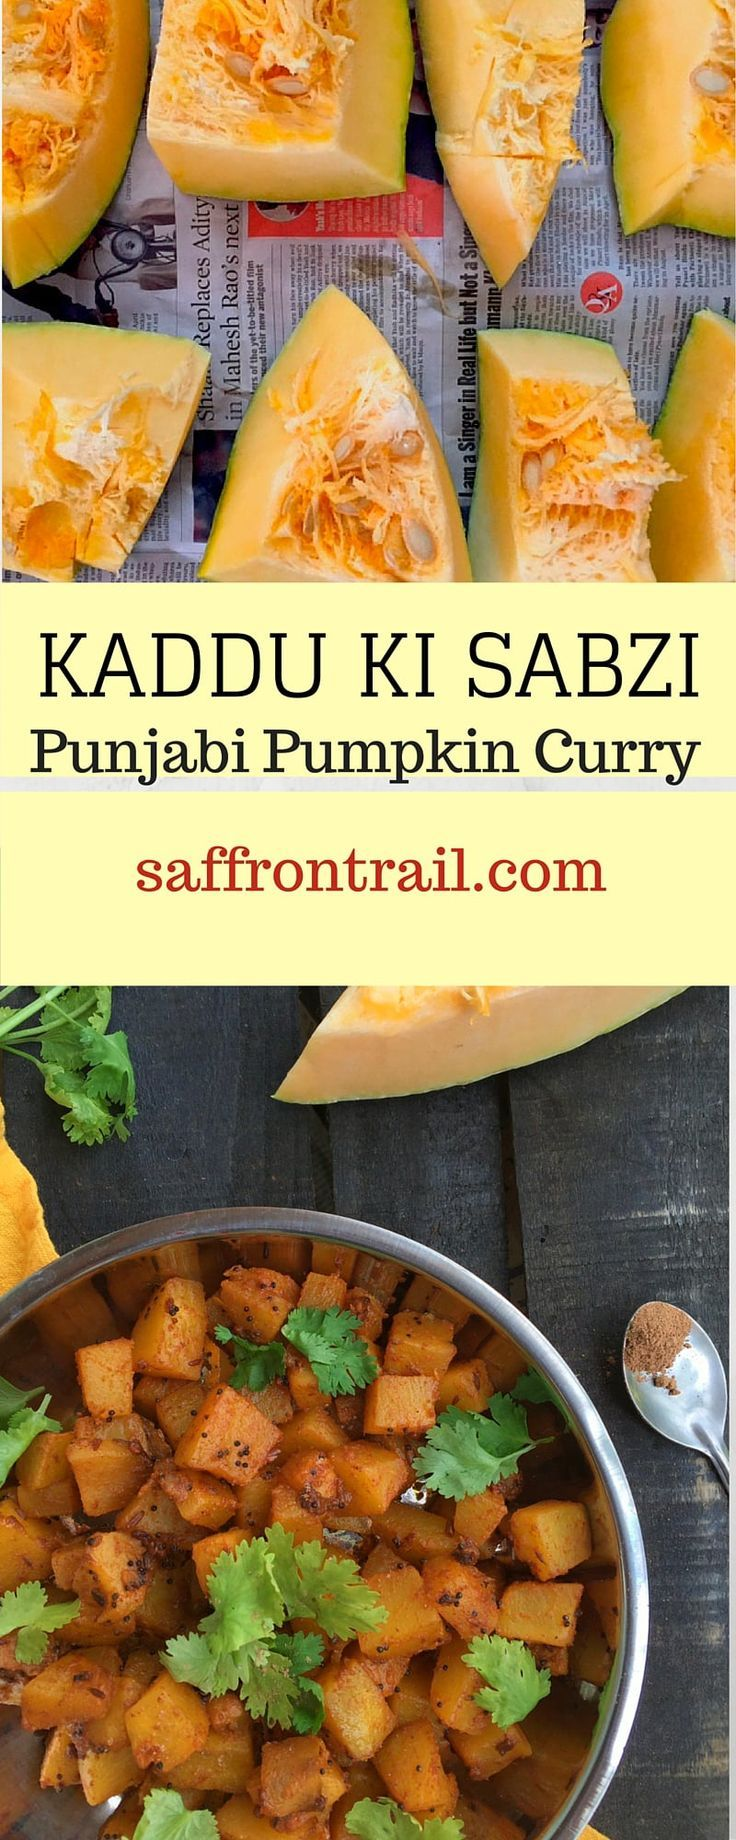 Indian food Recipes (Punjabi) - This authentic recipe for Punjabi style Khatti Meethi Kaddu ki Sabzi (Sweet Sour Pumpkin Curry) comes from a friend's mother who is a brilliant cook. This is THE sabzi to eat with Pooris.